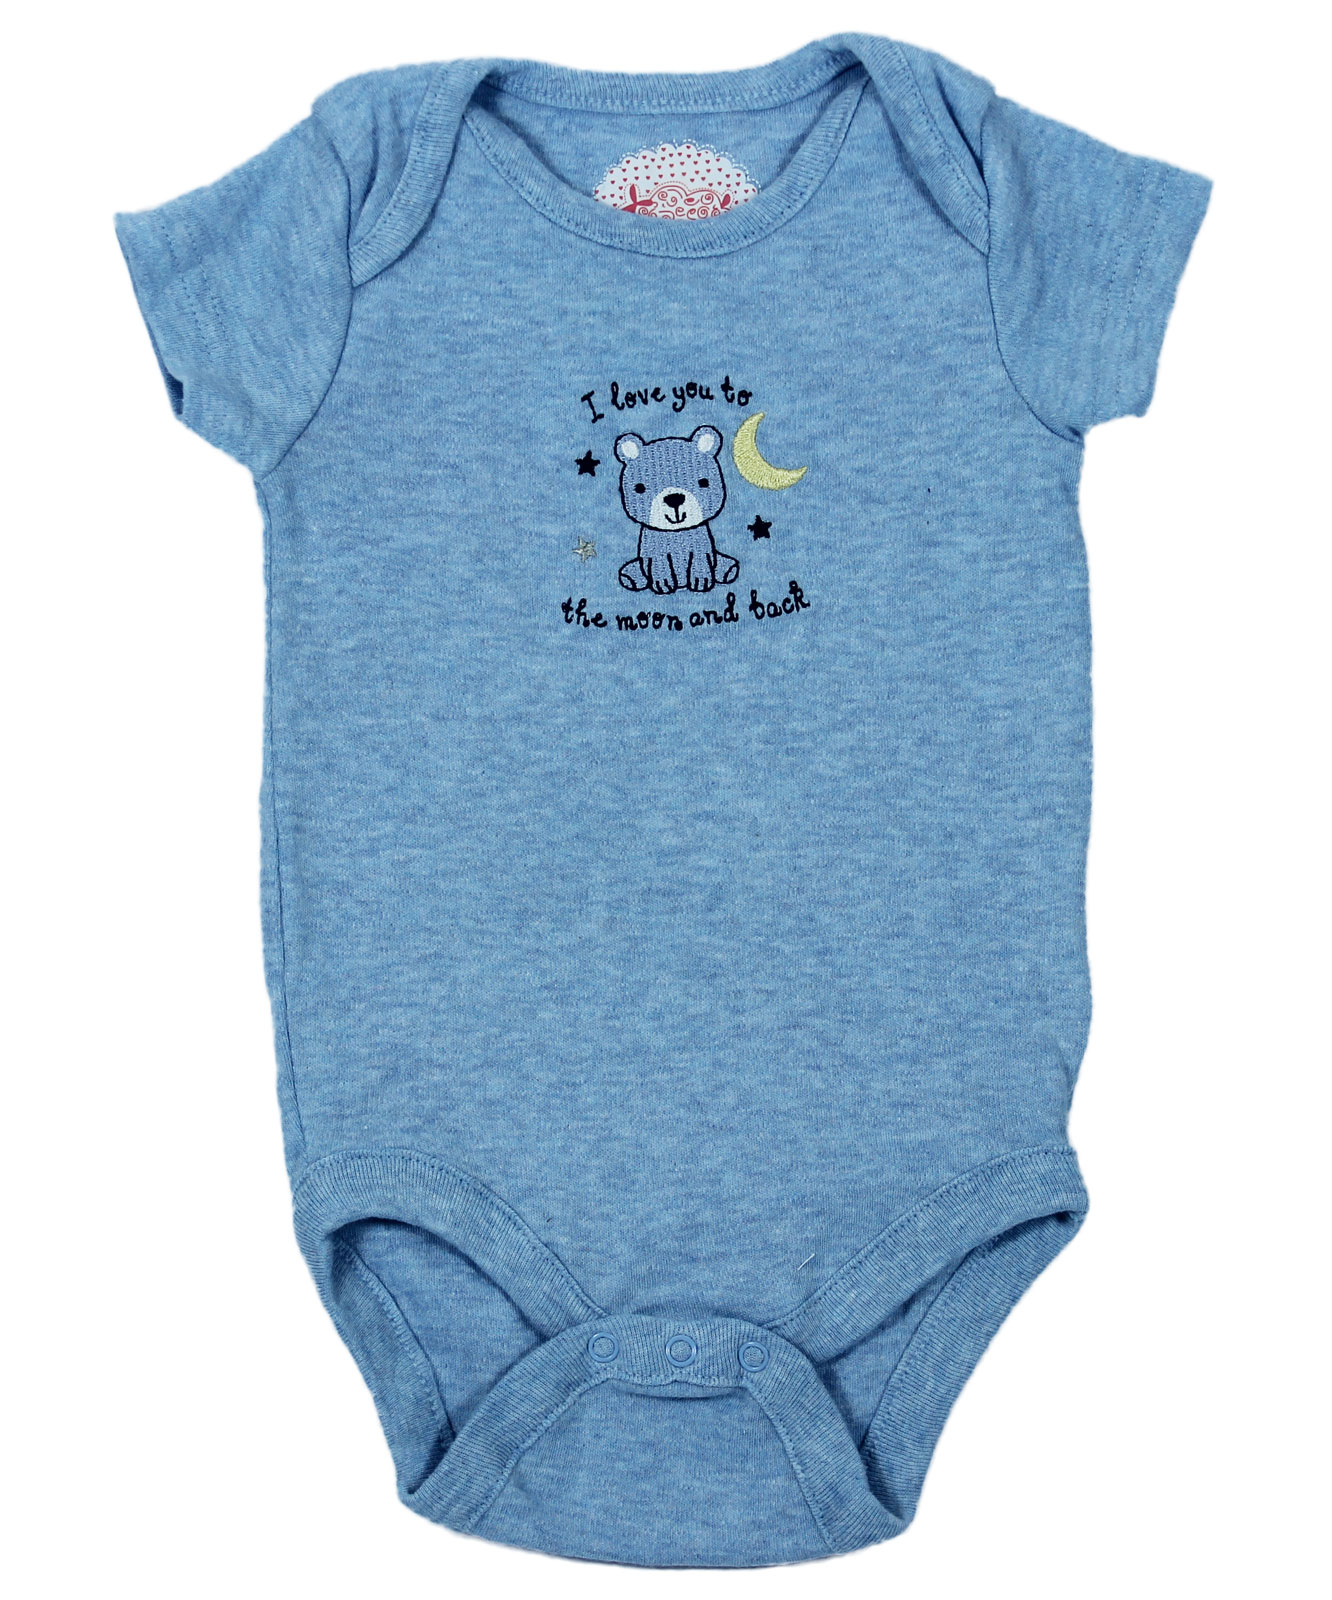 I Love You To The Moon And Back Blue Baby Rompers Giraffy In